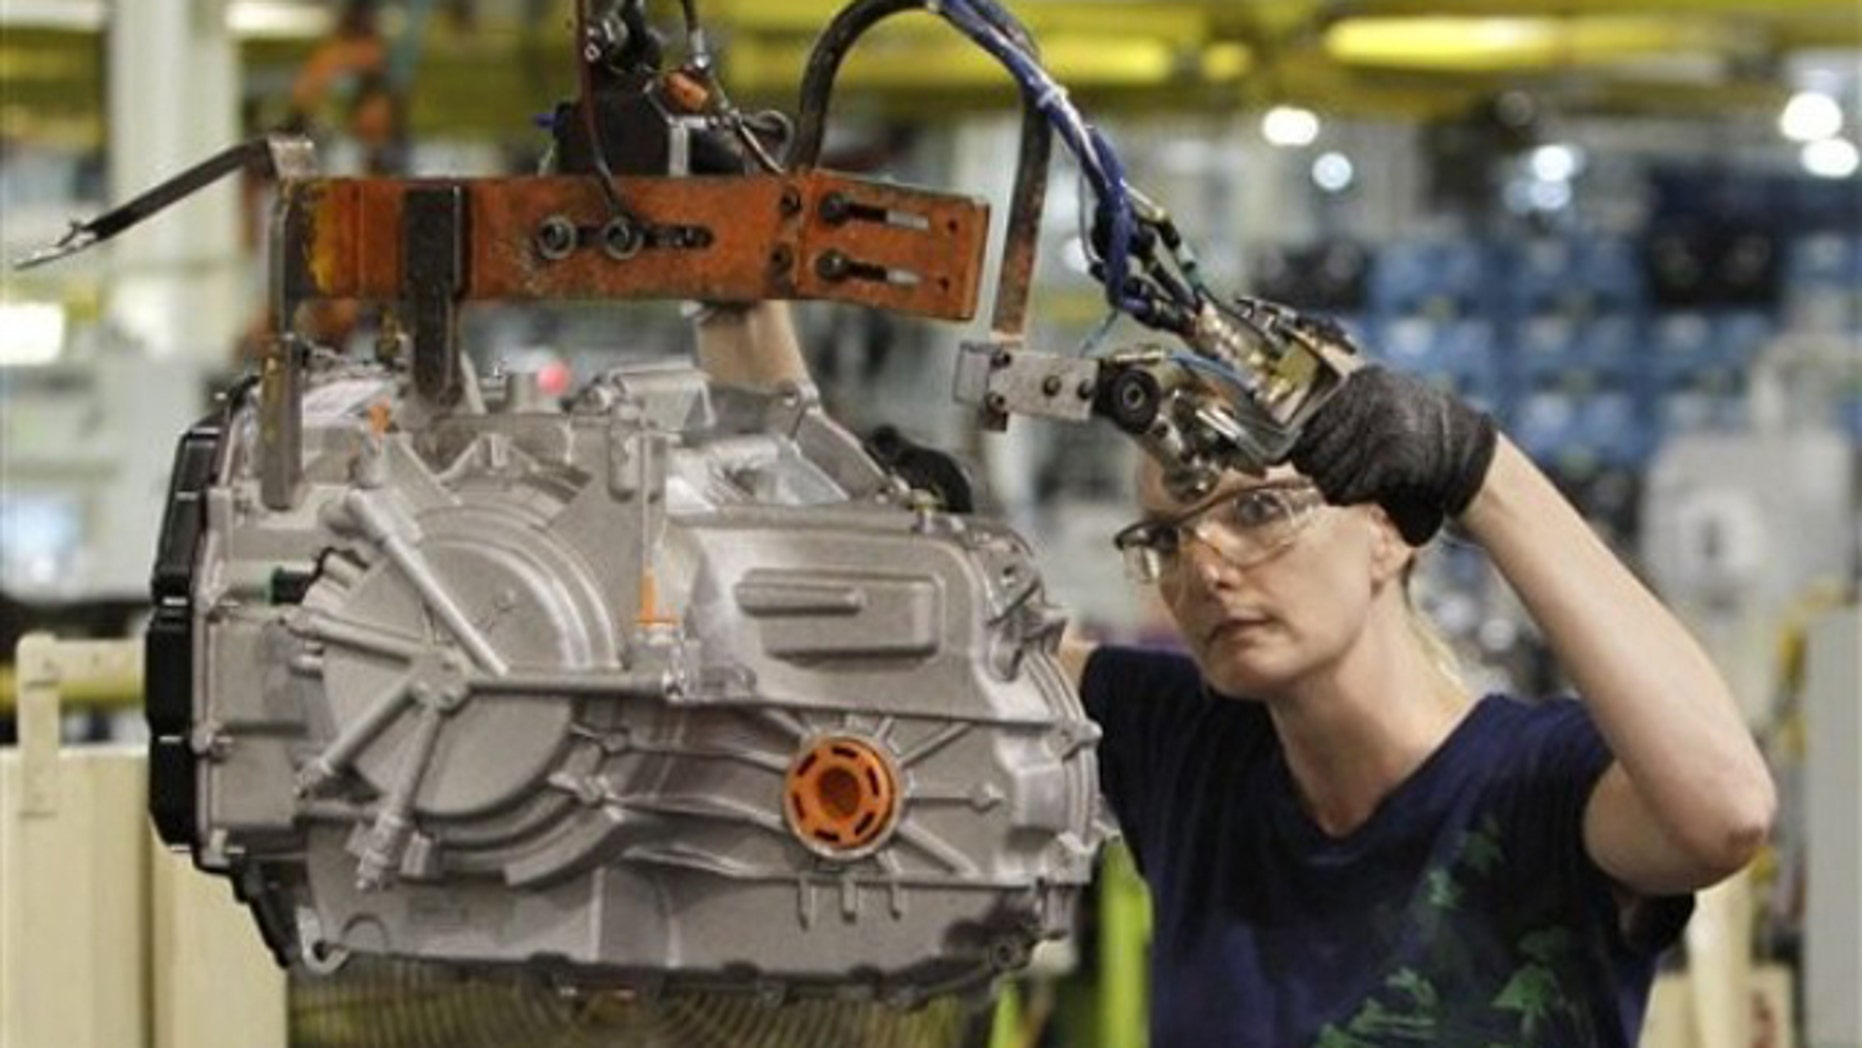 In this June 9 file photo, a line worker moves a transmission from the assembly line to a pallet at the Ford Van Dyke Transmission Plant in Sterling Heights, Mich.